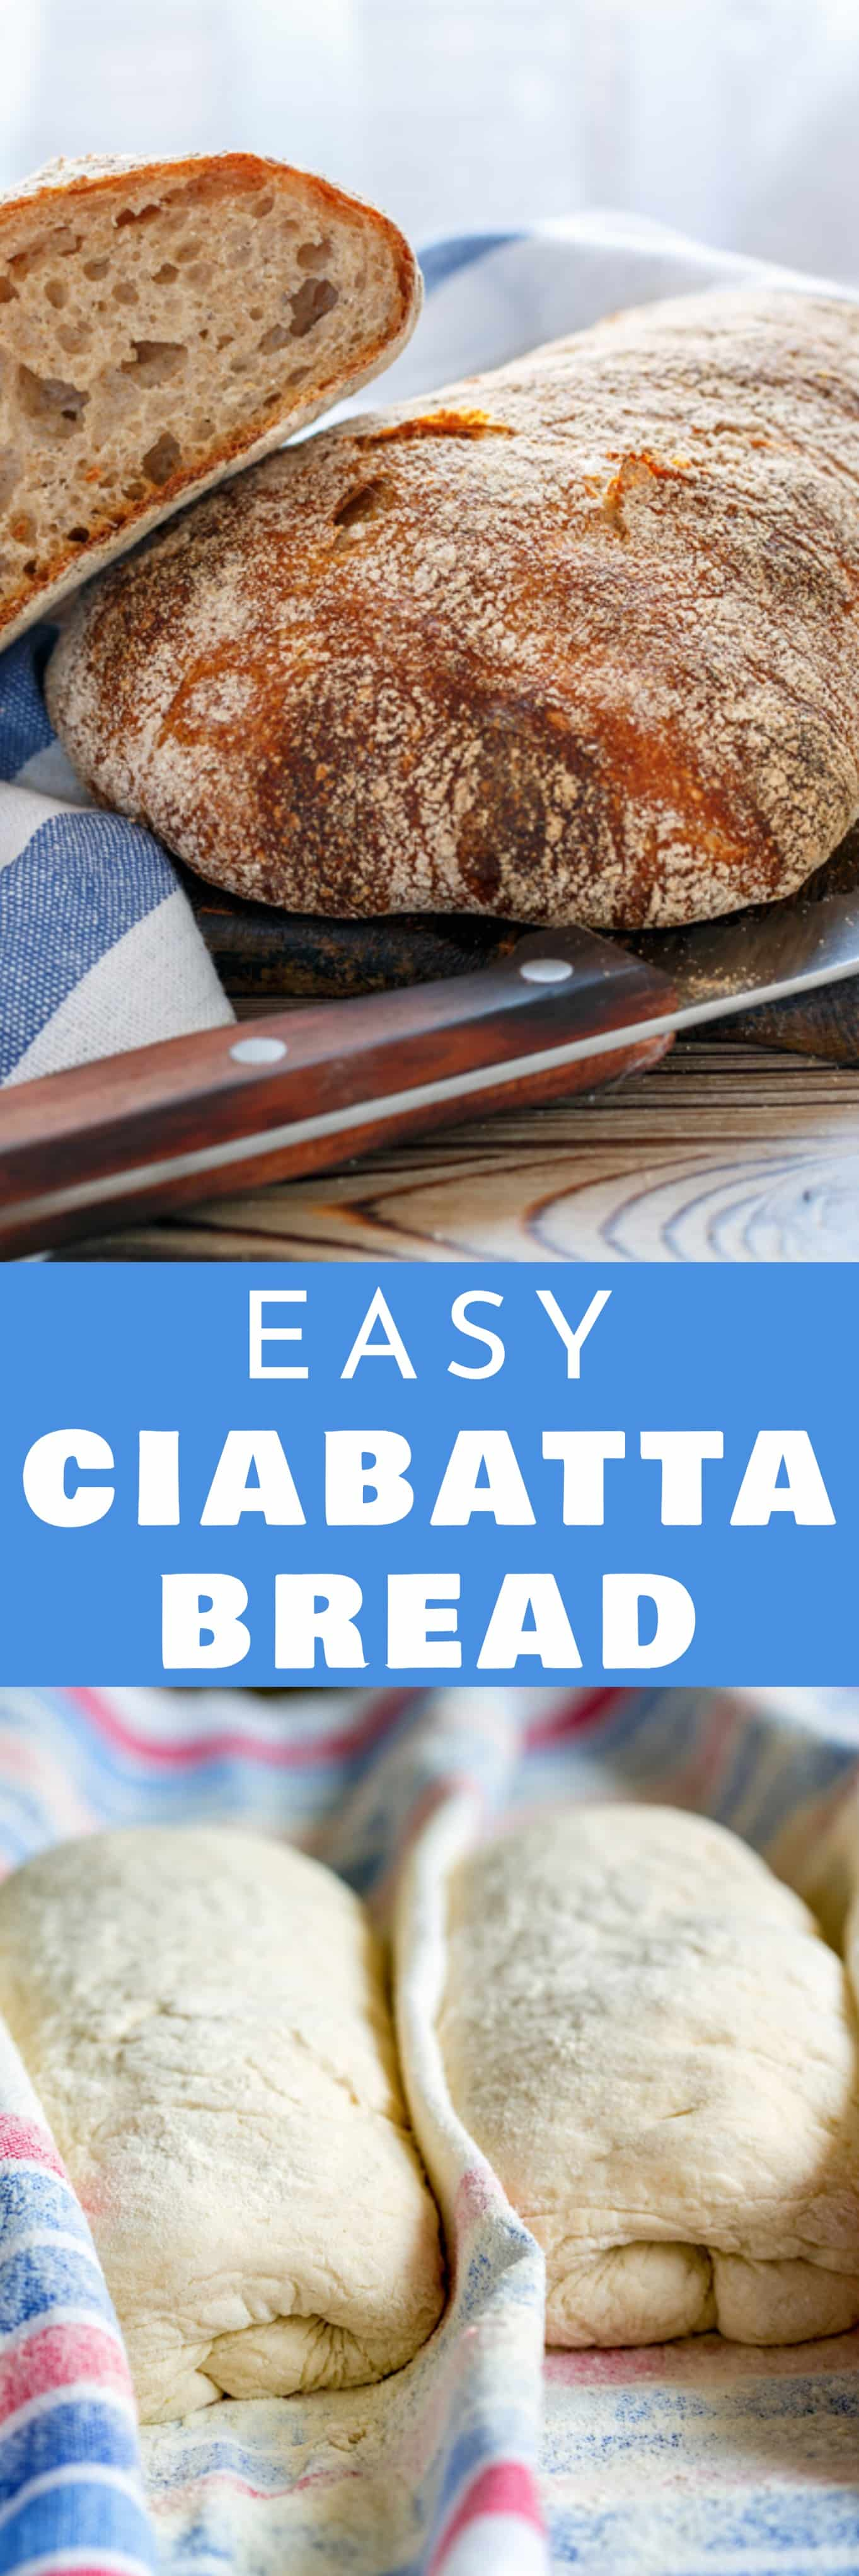 Ciabatta bread recipe! This homemade bread is crusty and filled with holes! It's easy to make in the bread machine. Serve it for sandwich, soup or a dinner side dish!